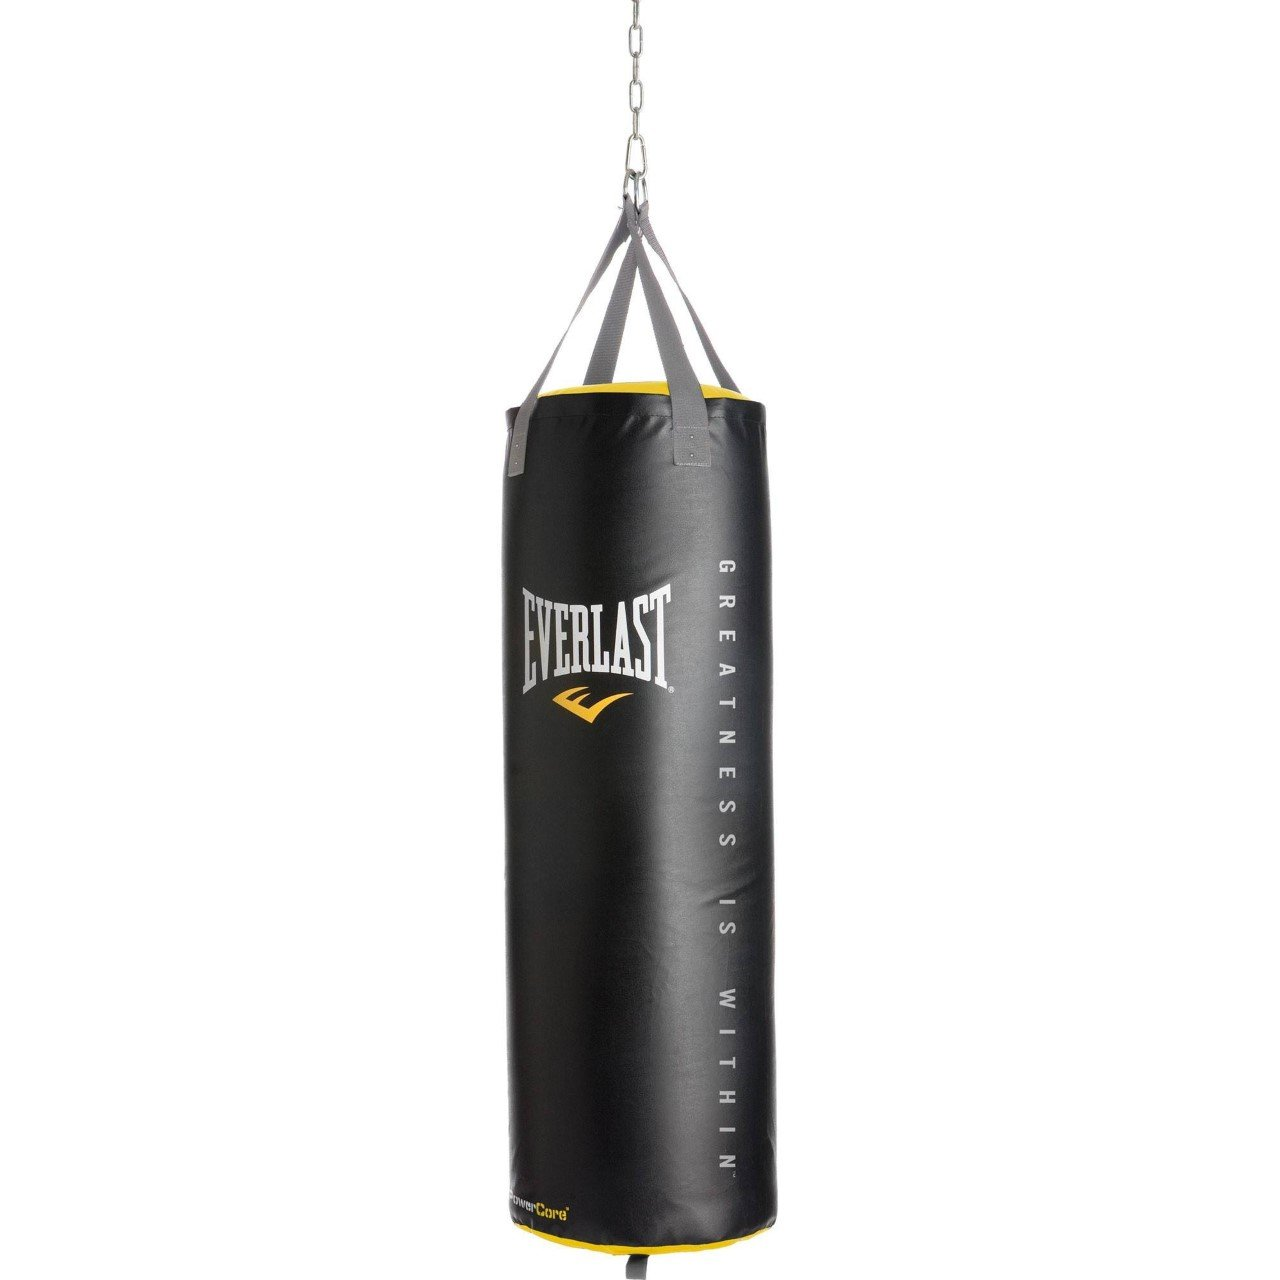 Everlast Powercore Nevatear 100lb Heavy Bag